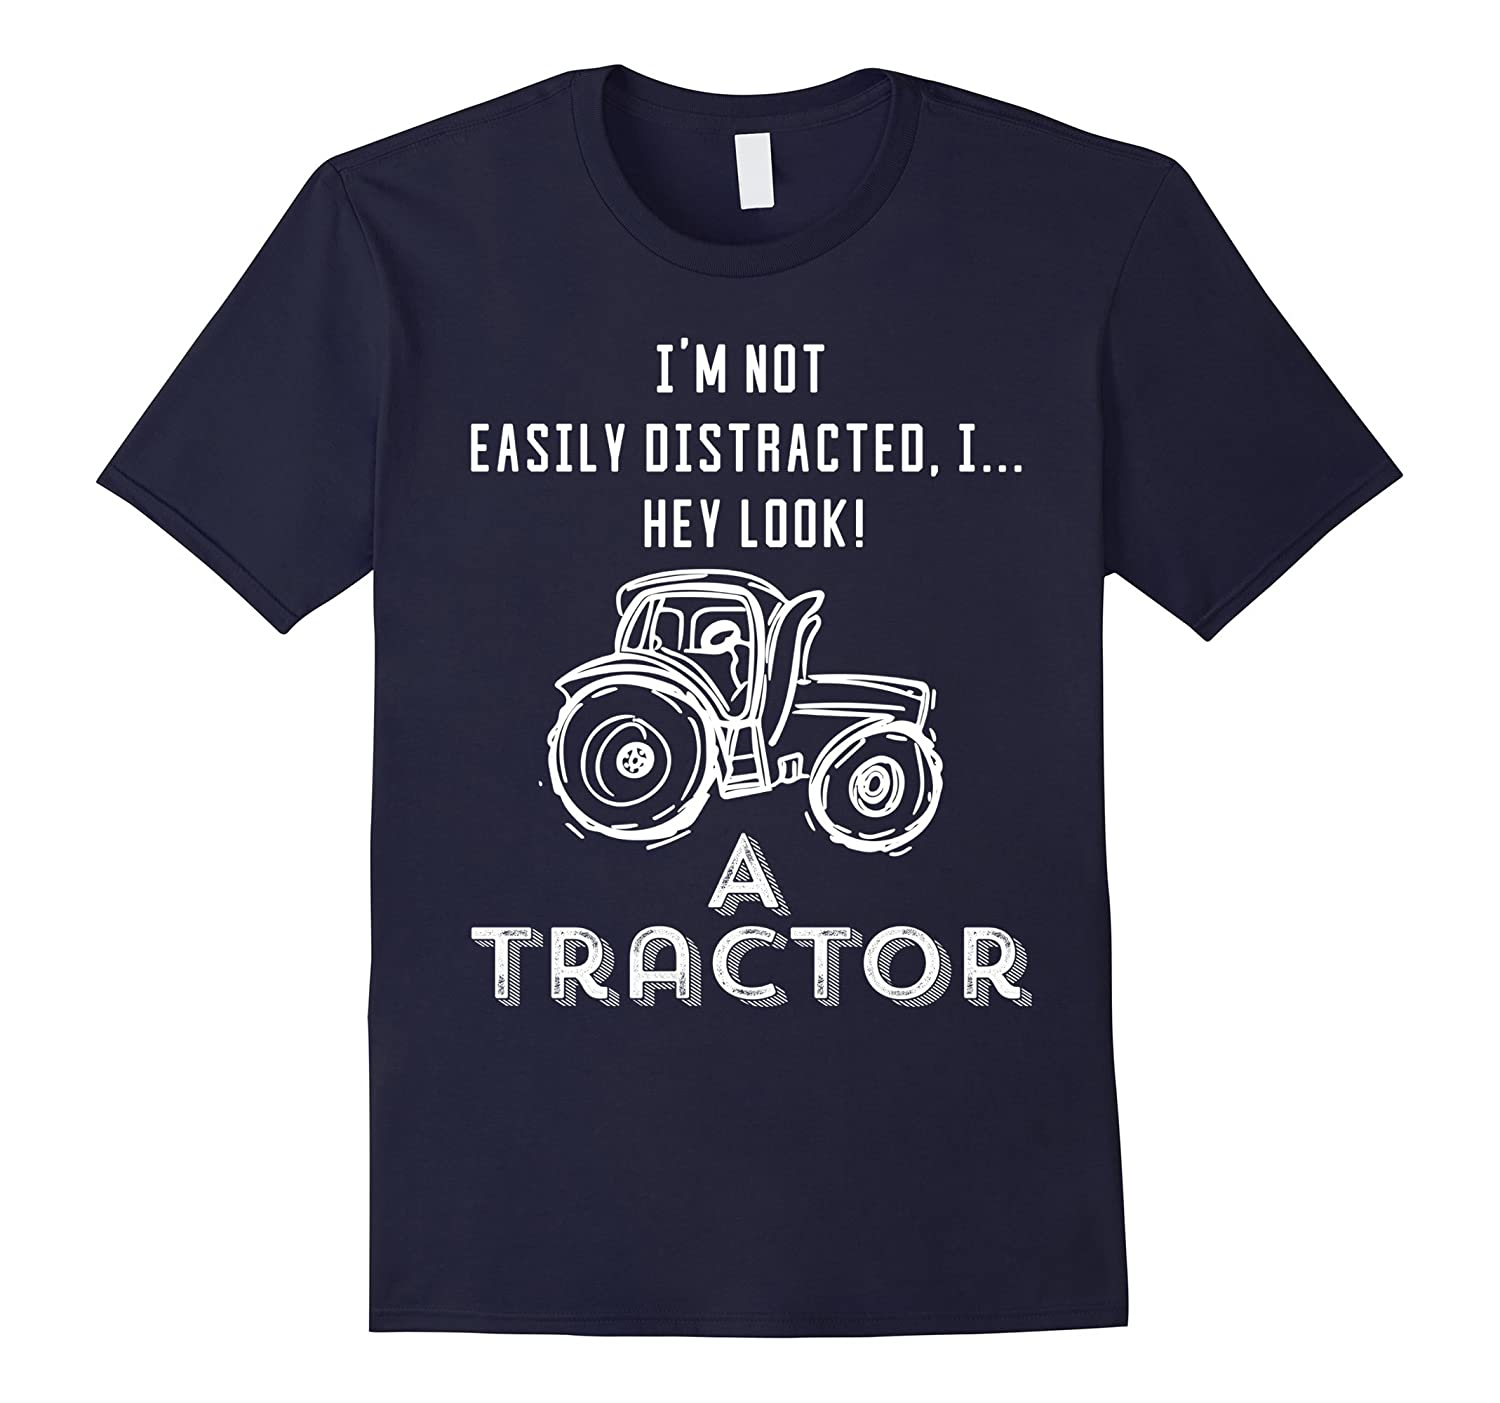 Funny Tractor Shirt - Hey Look A Tractor-FL